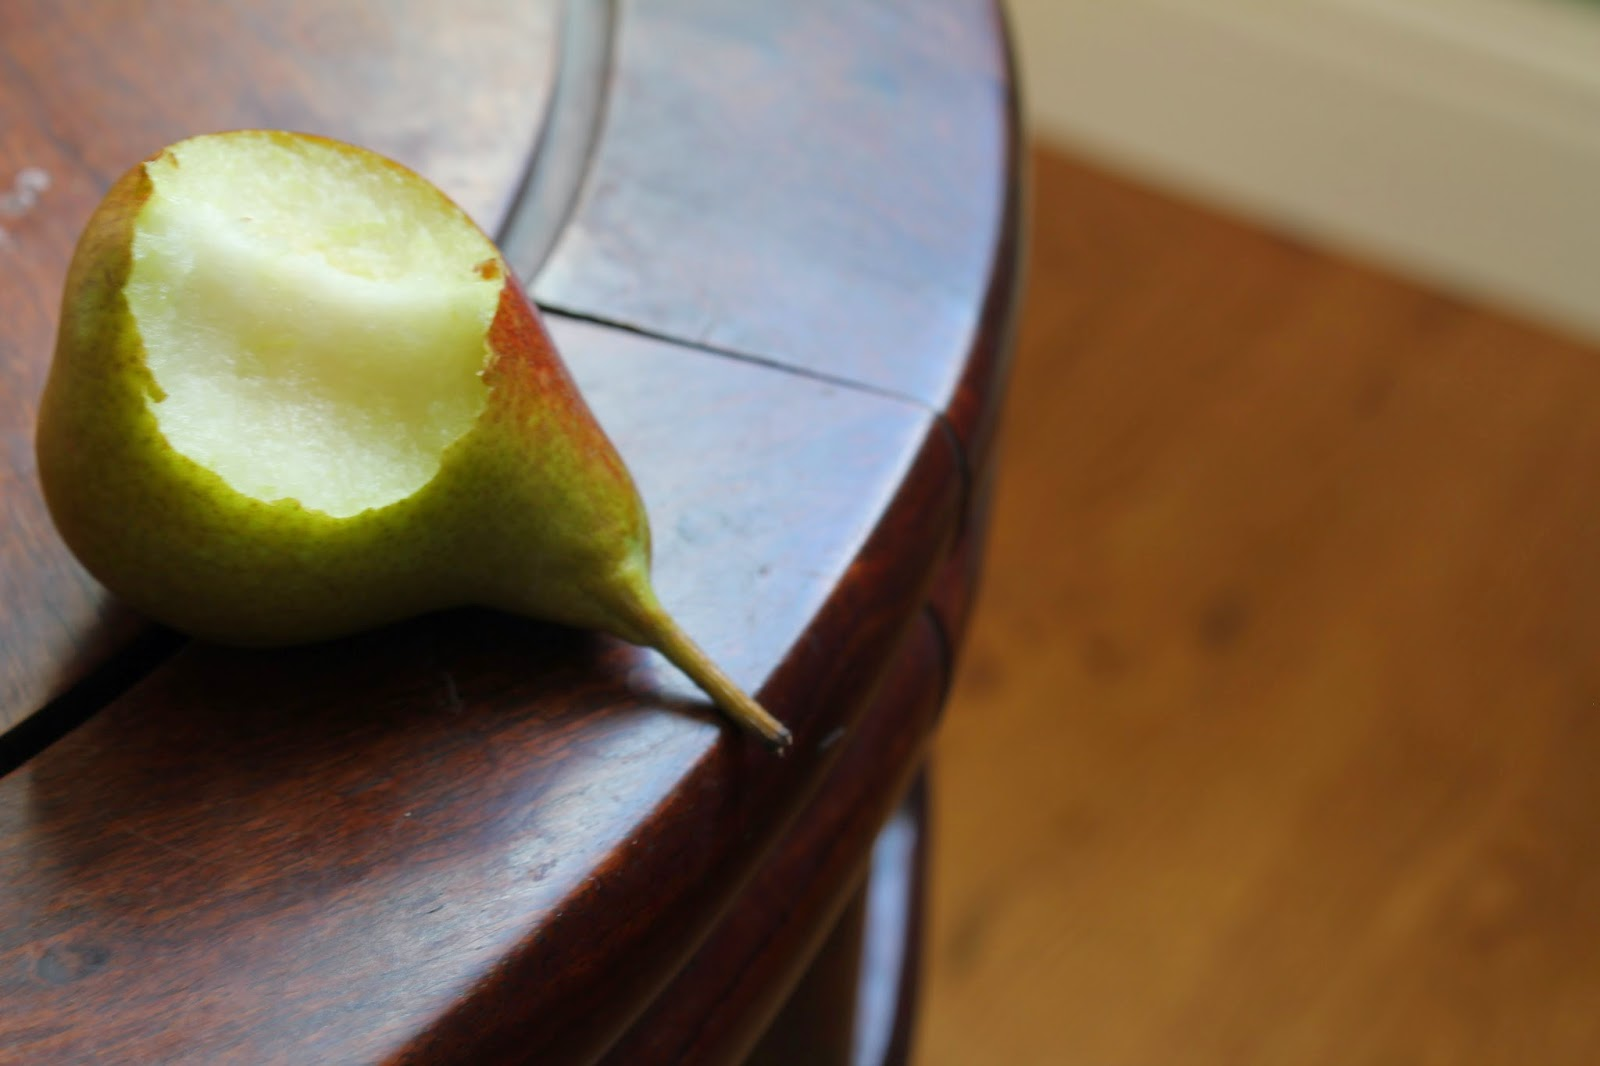 Seckle pear on table